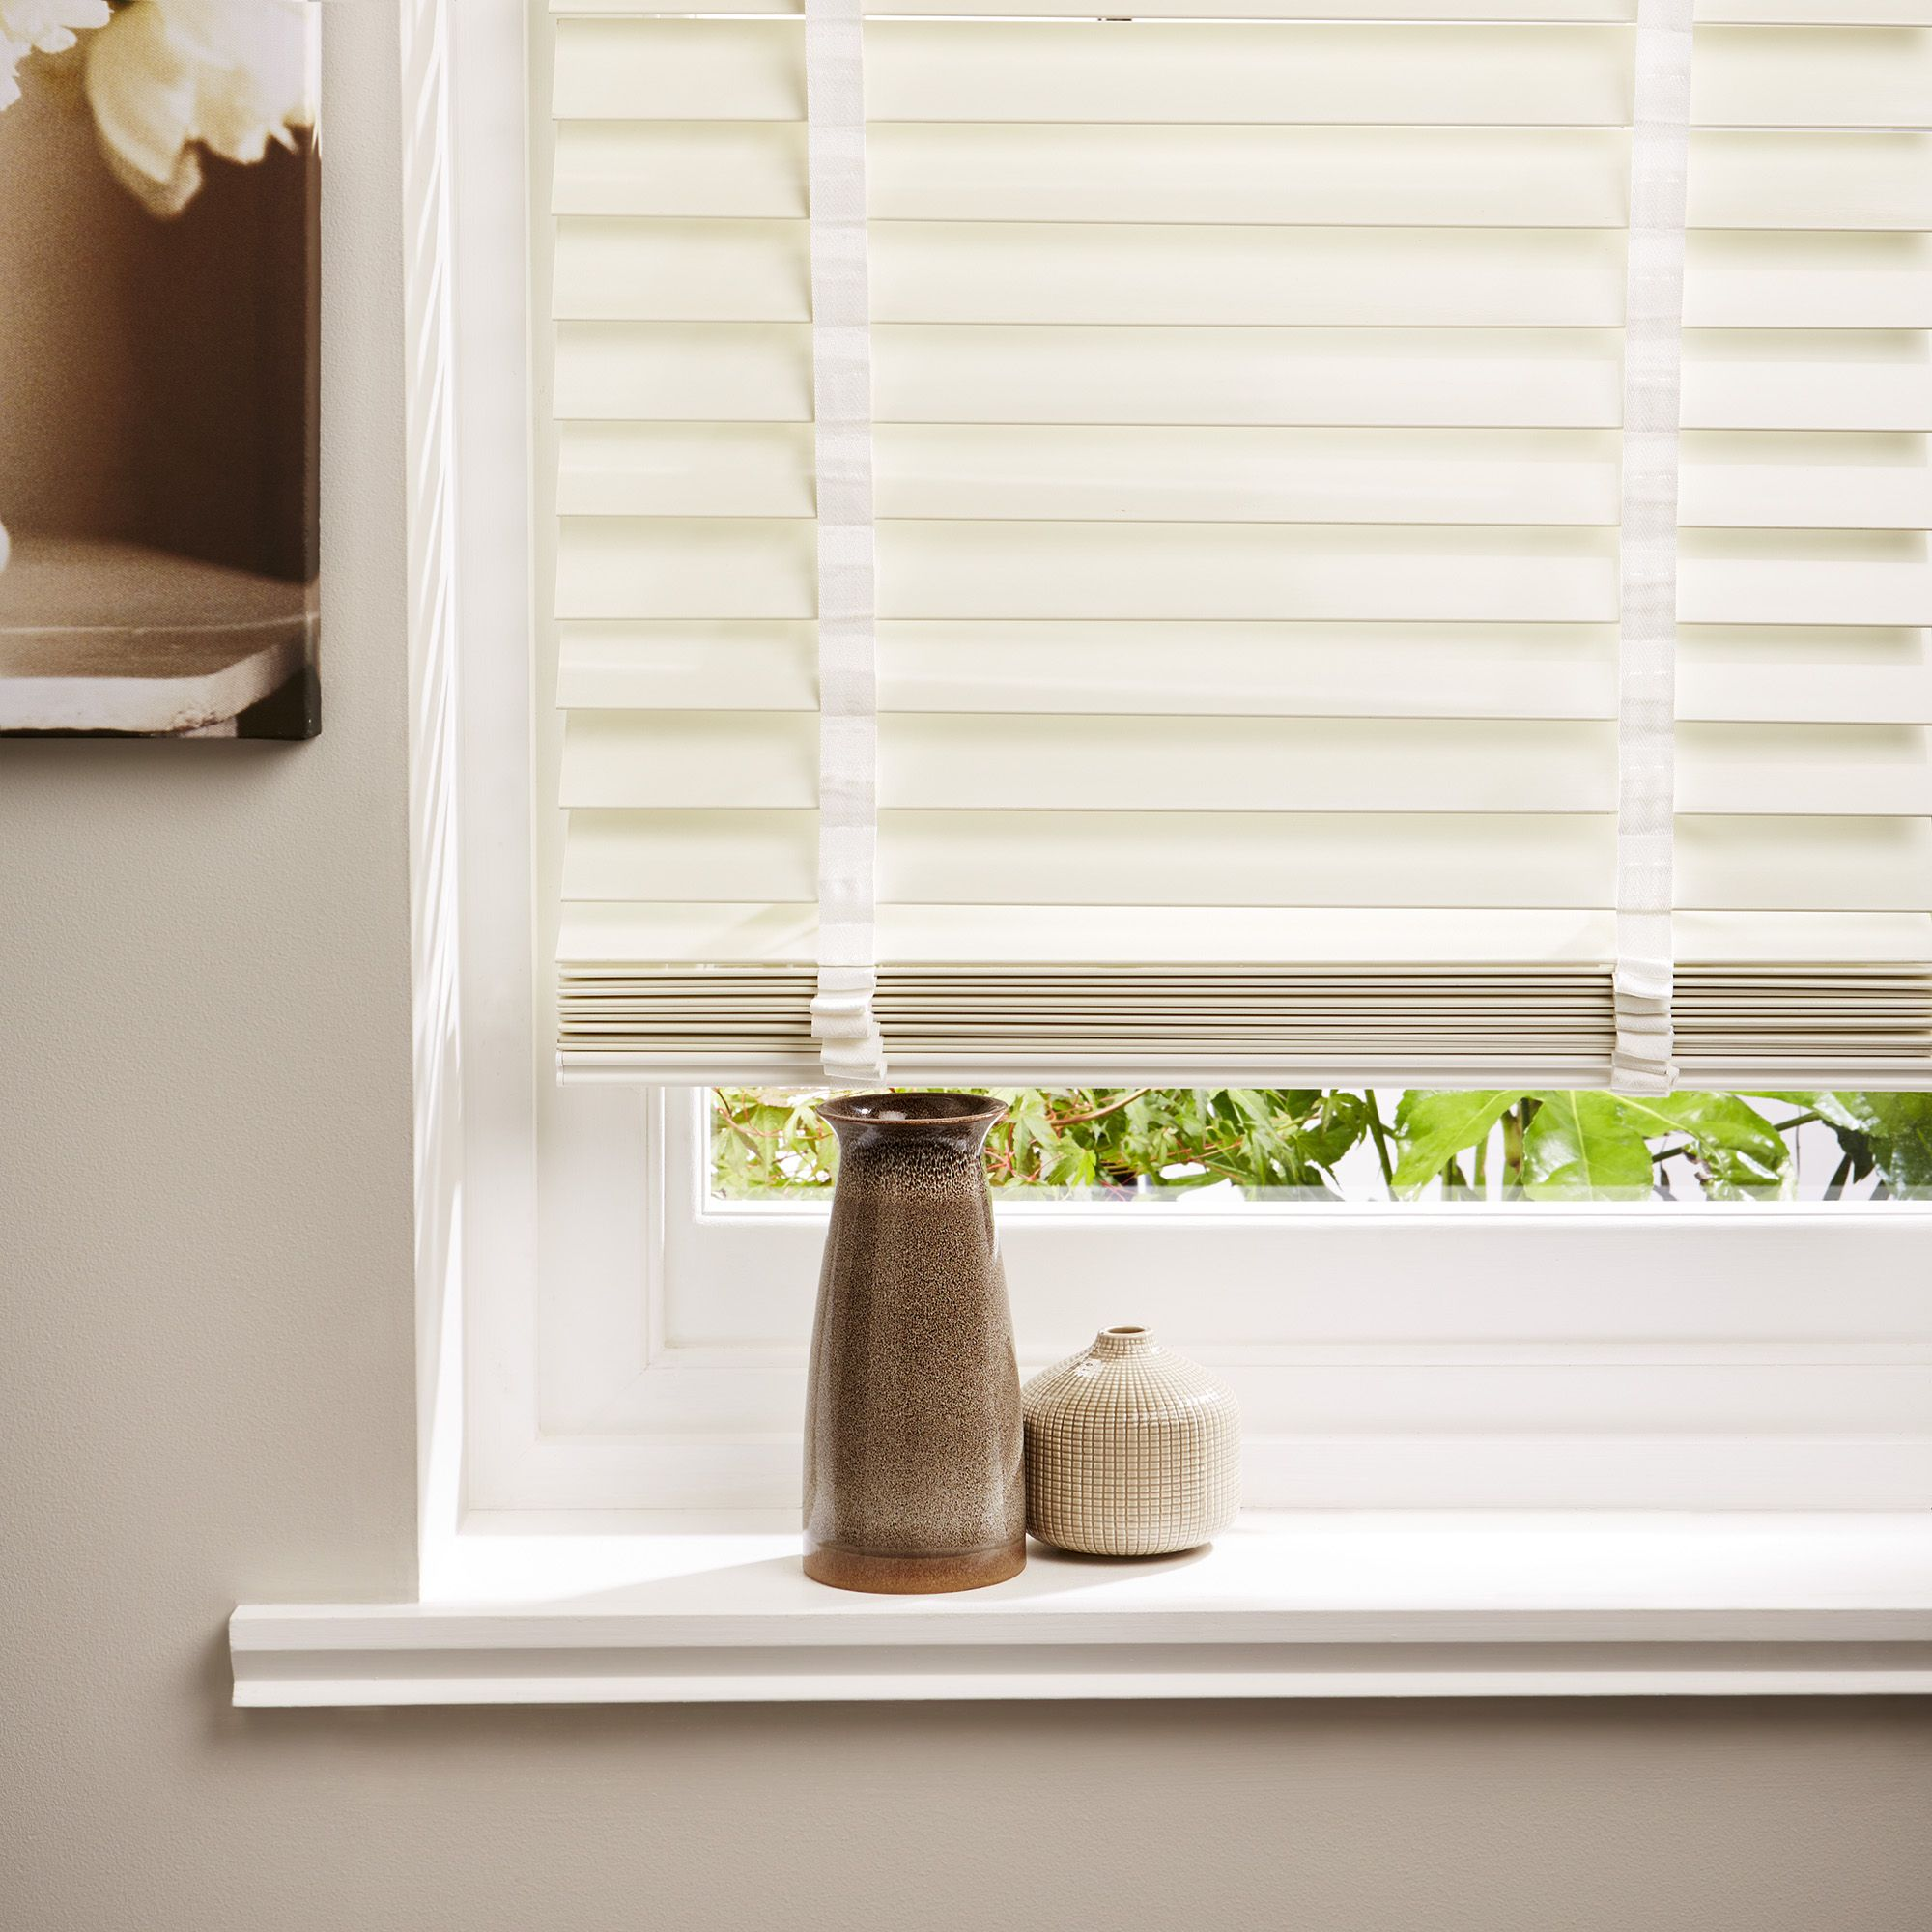 window awesome ideas shutter design of home blinds and bathroom exquisite